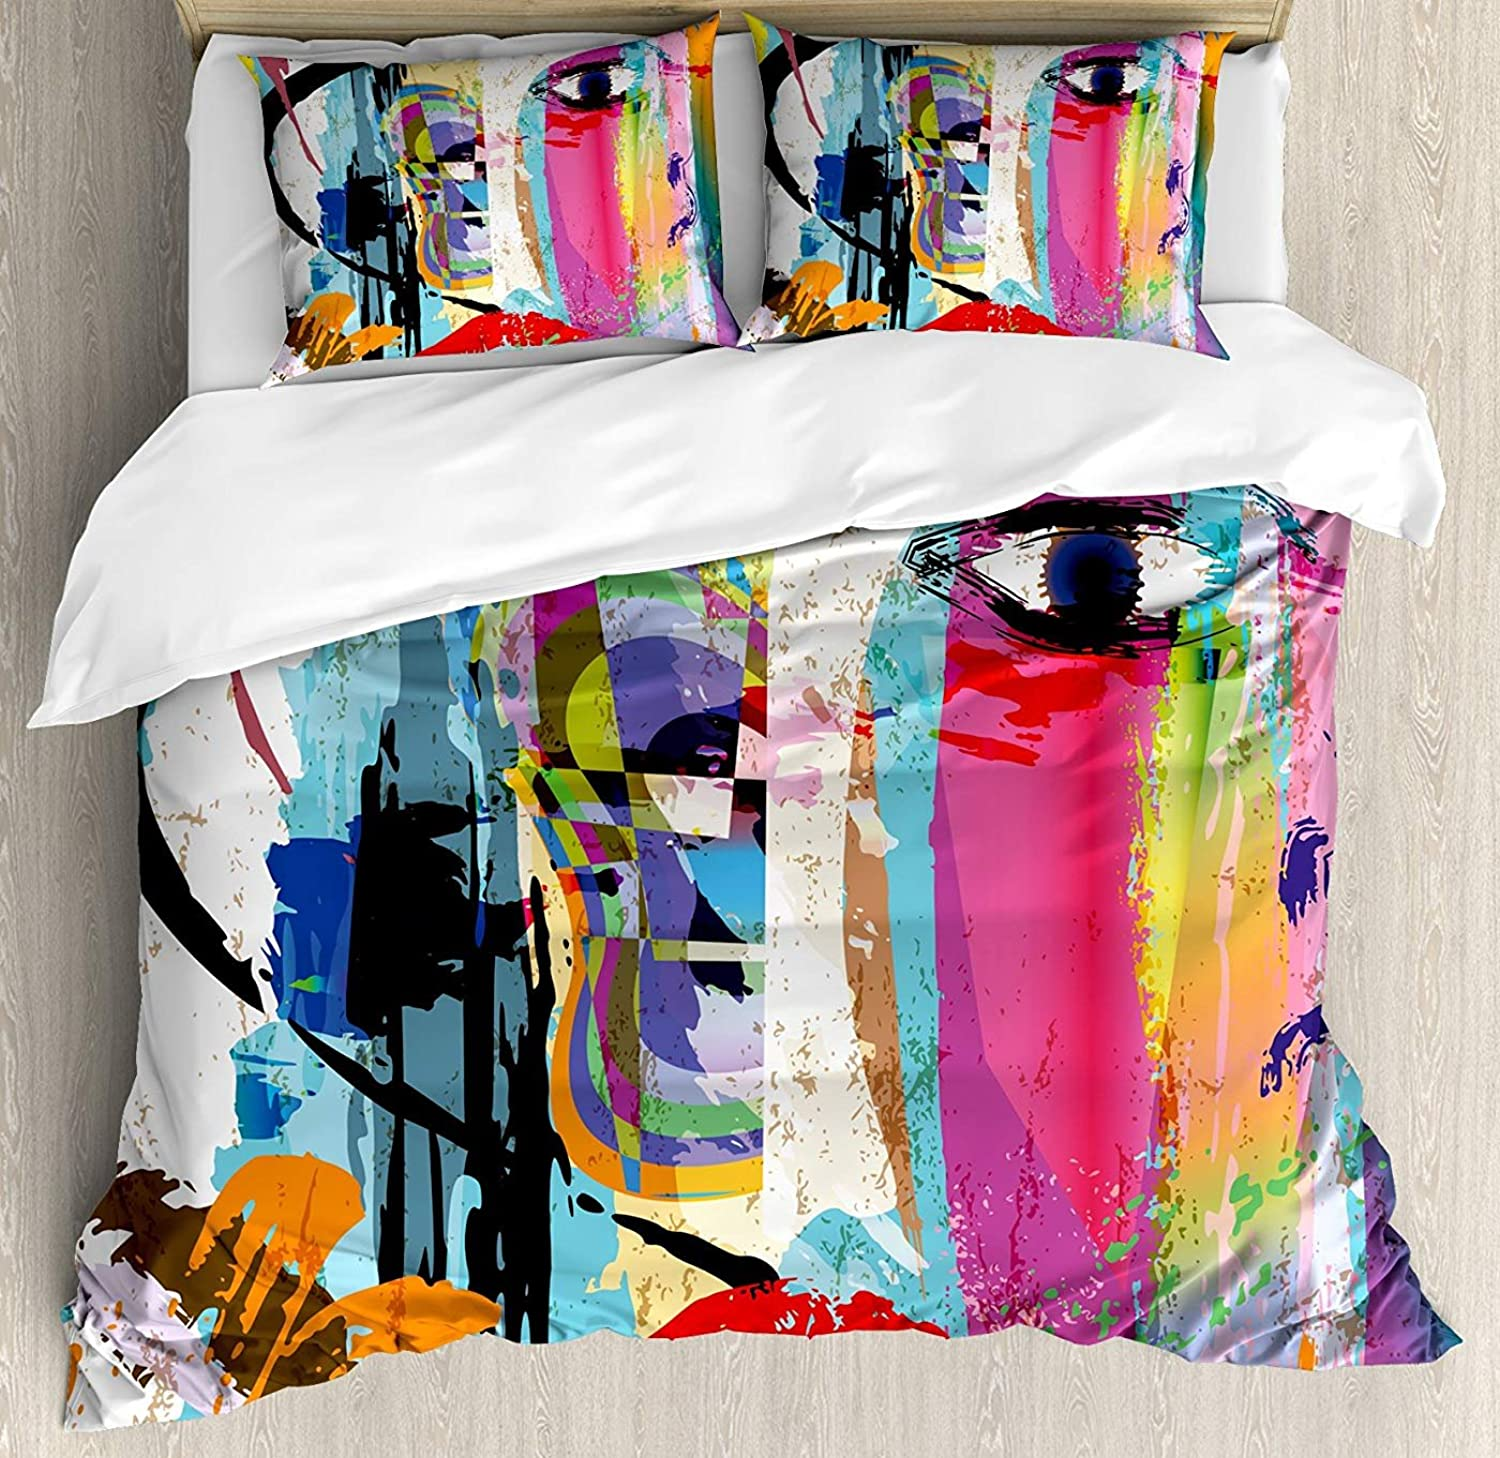 Art Duvet Cover Set Queen Size, Contemporary Paint Strokes Splashes Face Mask Paint Kiss Graffiti Grunge Creative Theme,Lightweight Microfiber Duvet Cover Sets, Multicolor